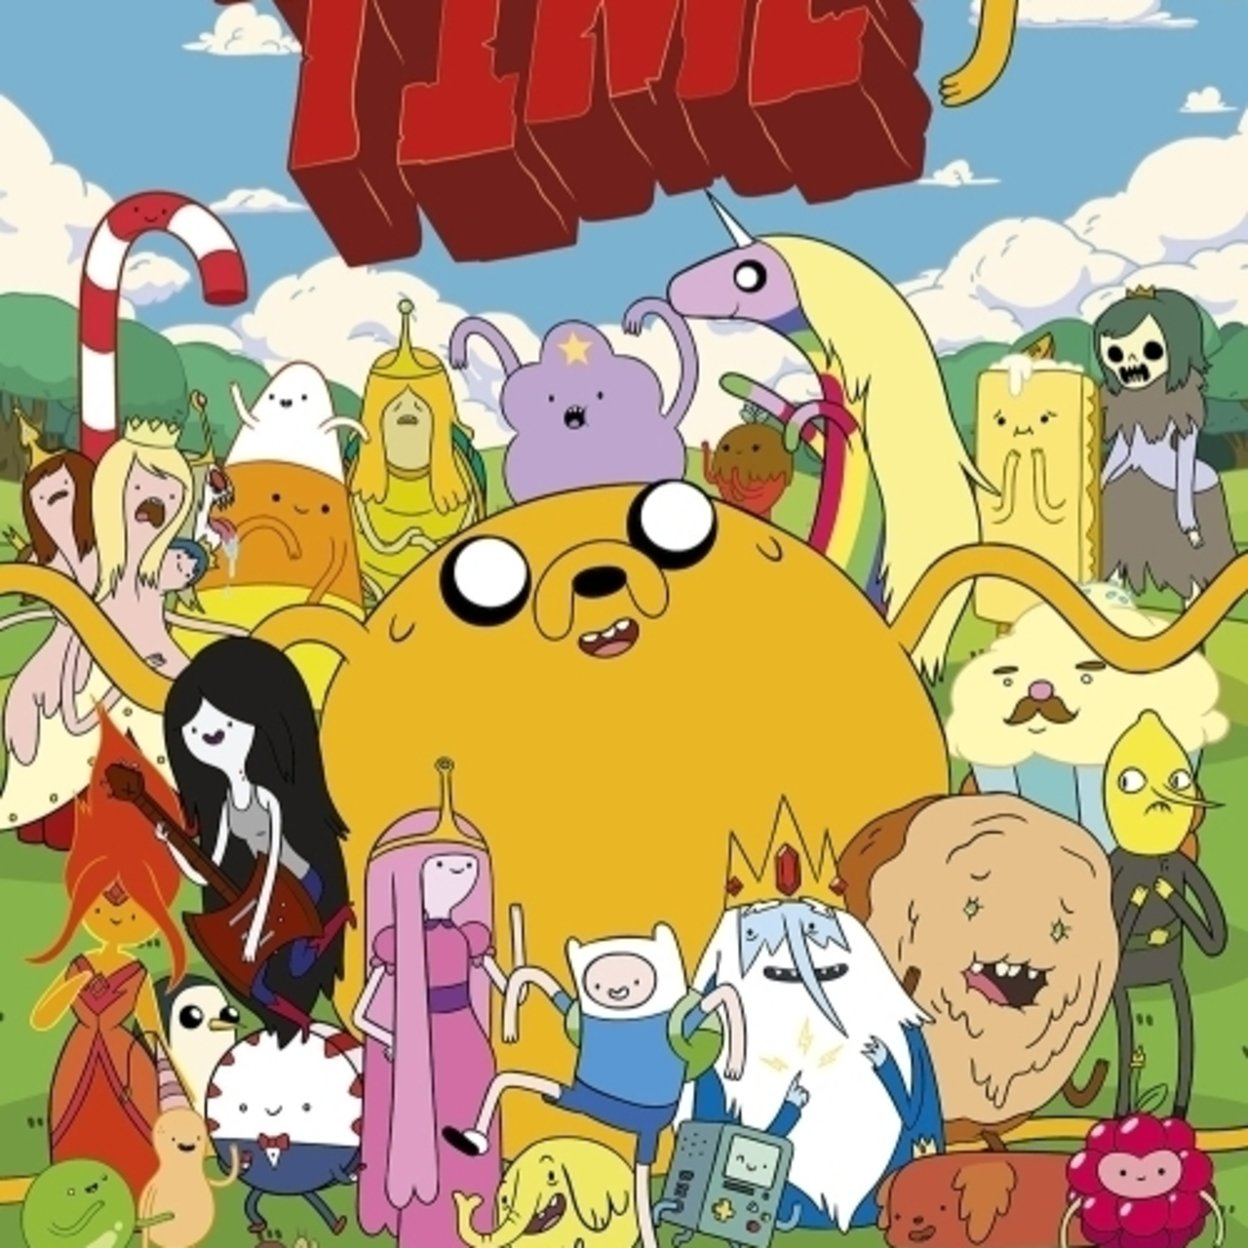 Adventure Time Characters Poster Print (24 x 36)  eBay